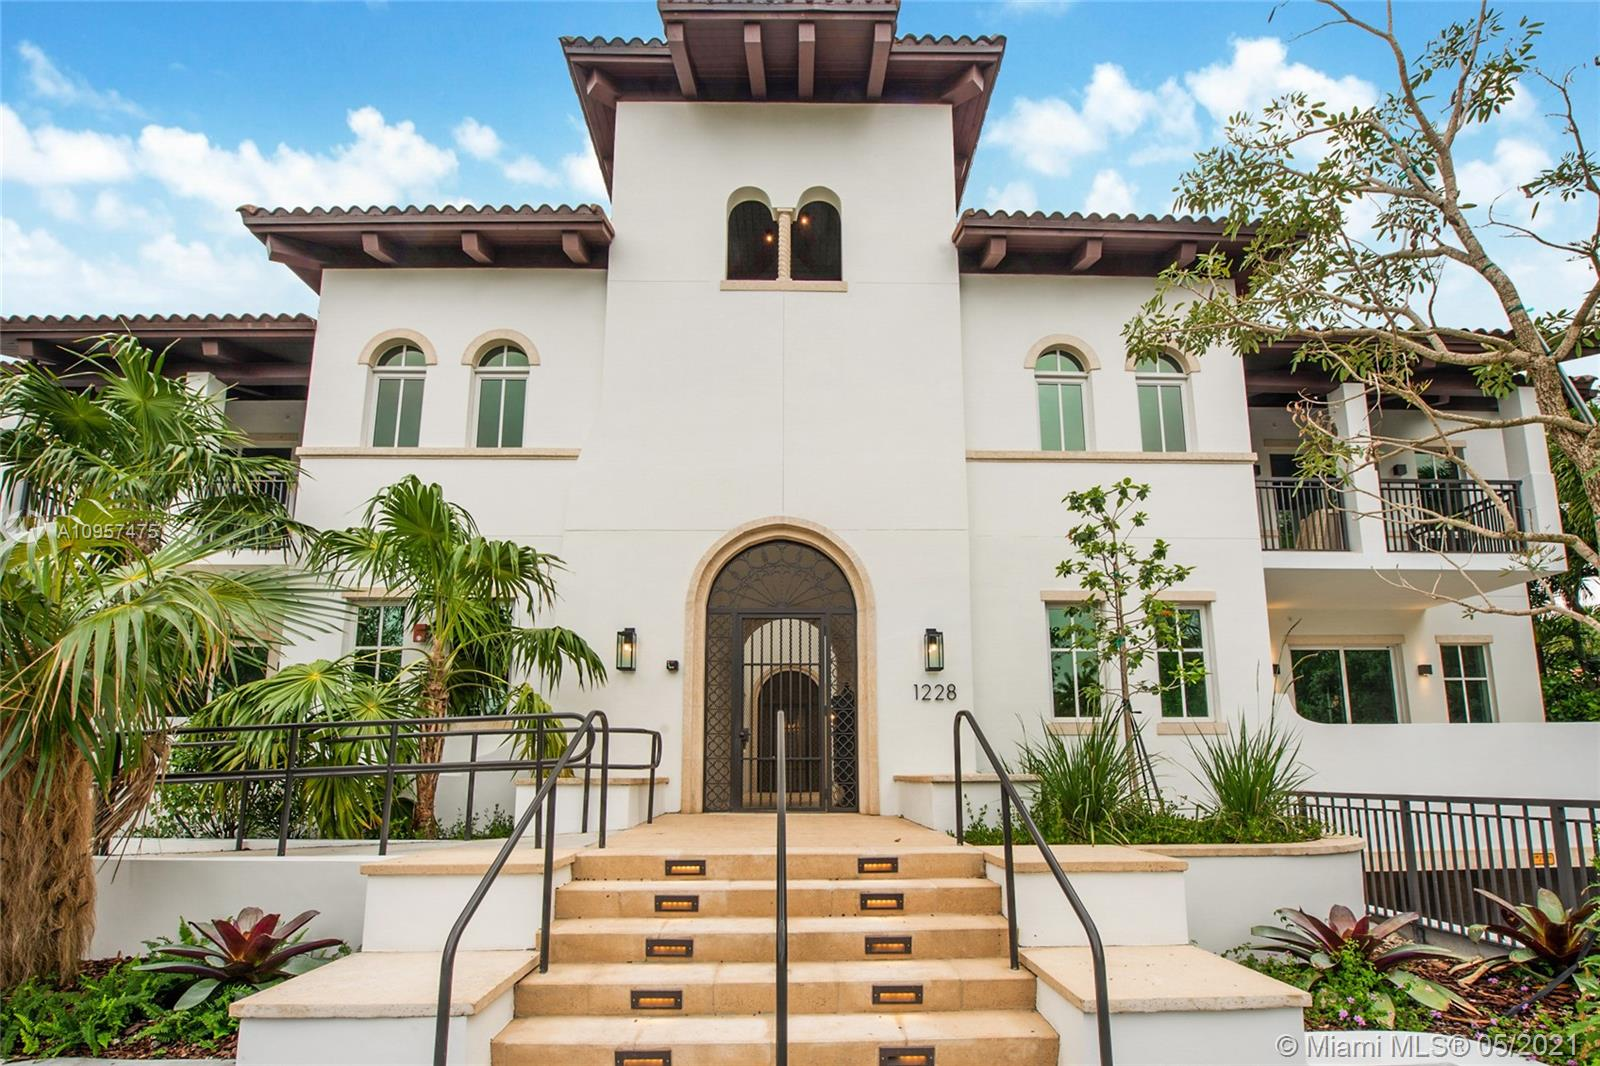 Be one of the fortunate few to live next to the iconic Biltmore Hotel. Enjoy Landmark-resort living in this boutique condo, 11 units on the golf course, the only condo of its kind in an established single-family neighborhood. This flat offers views of Anastasia and lovely estate homes , private elevator, 3 covered parking & covered terrace w/summer kitchen. Timeless beauty; the classic architecture, in keeping with Merrick's vision, is complemented by contemporary interiors, Italian Veneta Cucina kitchen, Wolf/Sub Zero appliances, sleek European doors & spa master bath. For a quick cool down, enjoy the residents' dipping pool, deck & tall privacy hedge. 1-year free members. to The Club at the Biltmore. LA + TOTAL incl. covered Summer kitchen terrace.